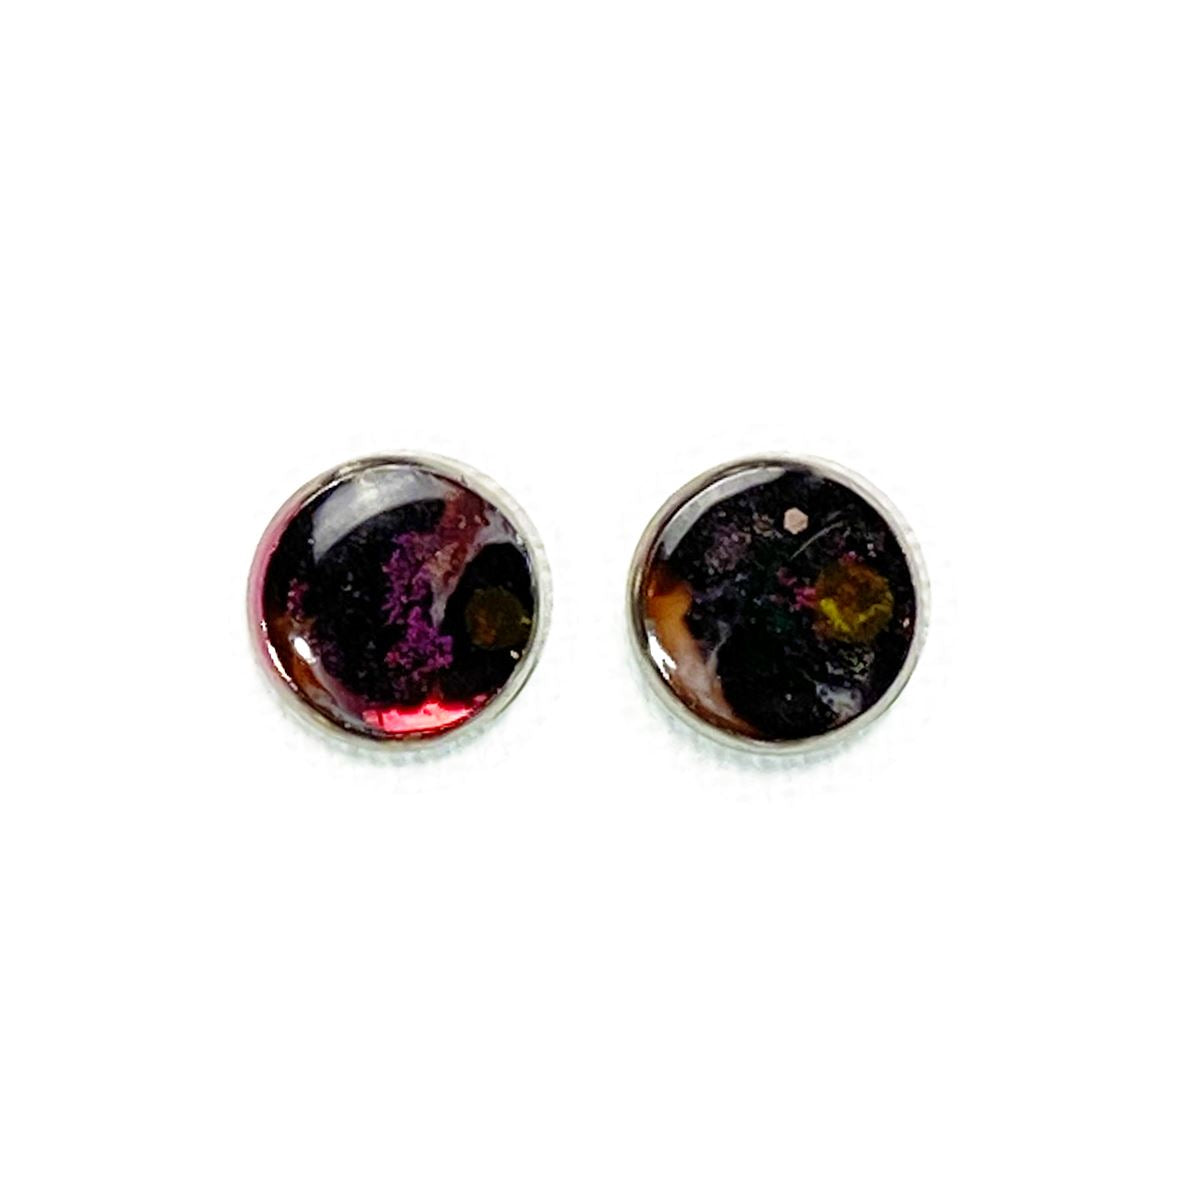 Nebulae - purple black 12mm stud earrings Deanna Dot Store